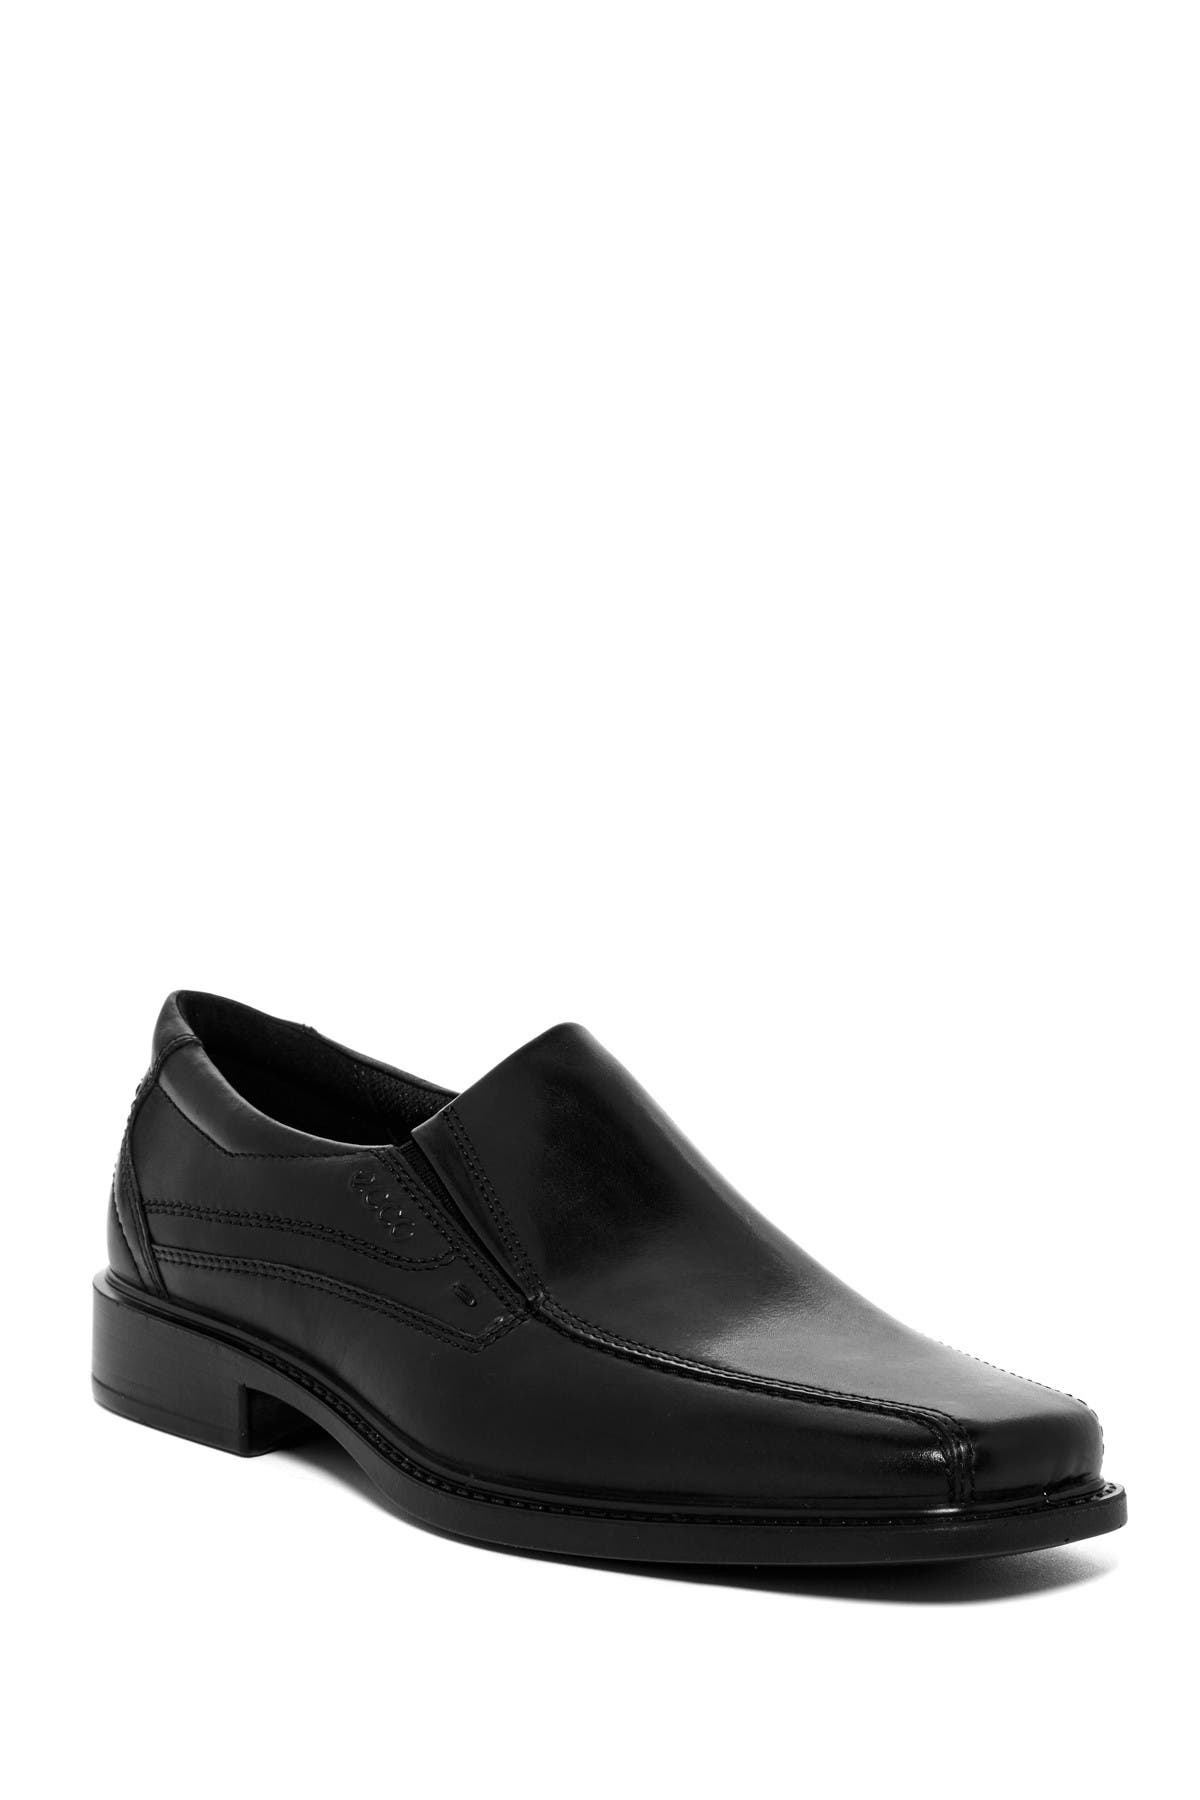 Image of ECCO New Jersey Leather Loafer